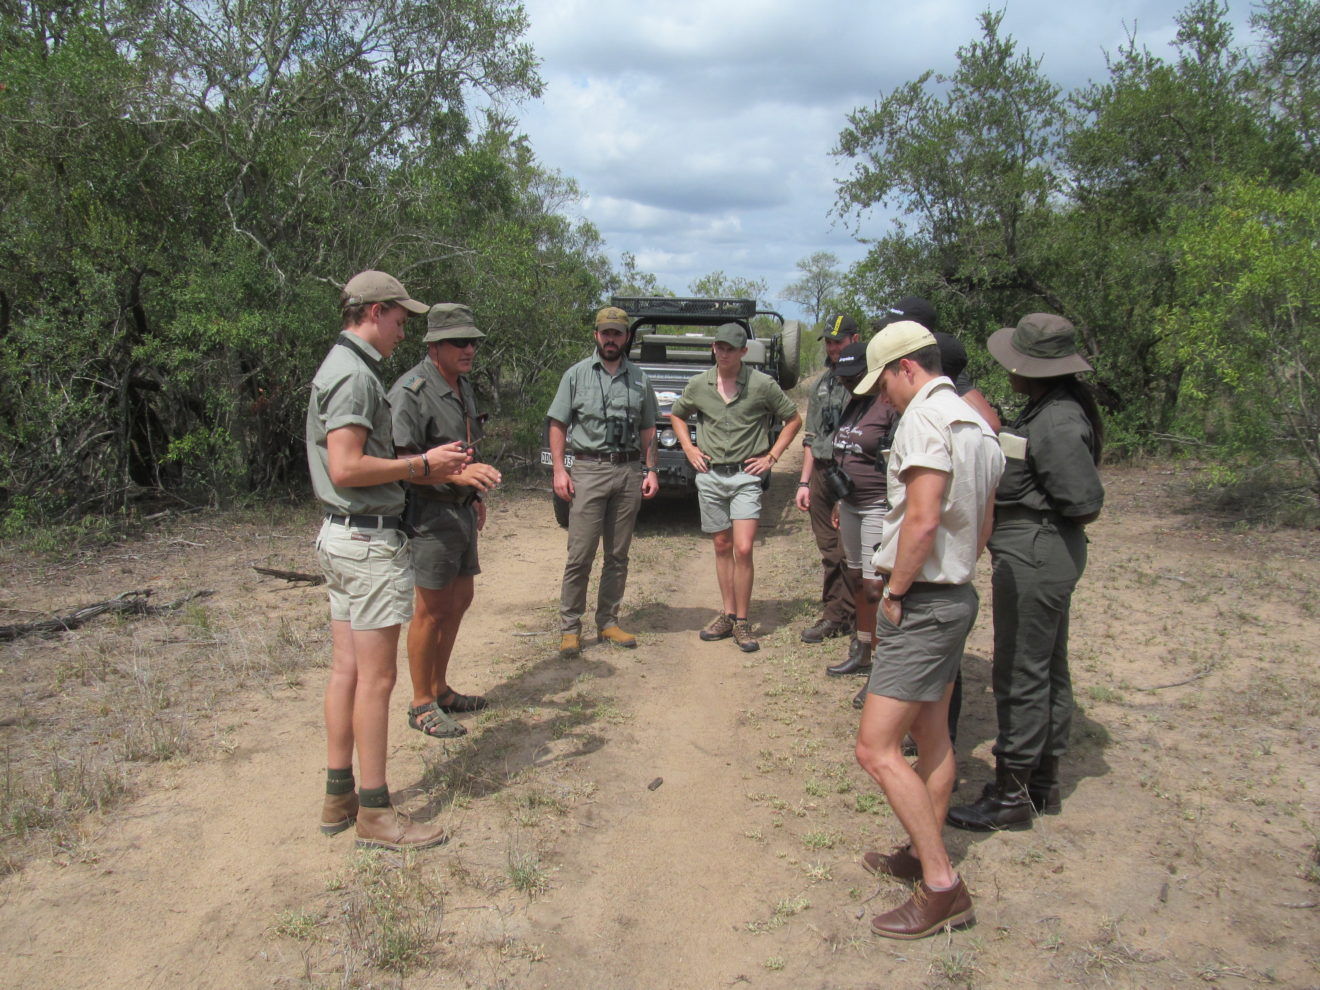 Interpreting the signs of the veld is all part of being a competent guide. Here senior trainer, Pieter Nel discusses tracks in the road with the new guiding students. Despite it being the height of the rainy season, the desperately dry condition of the veld is obvious.